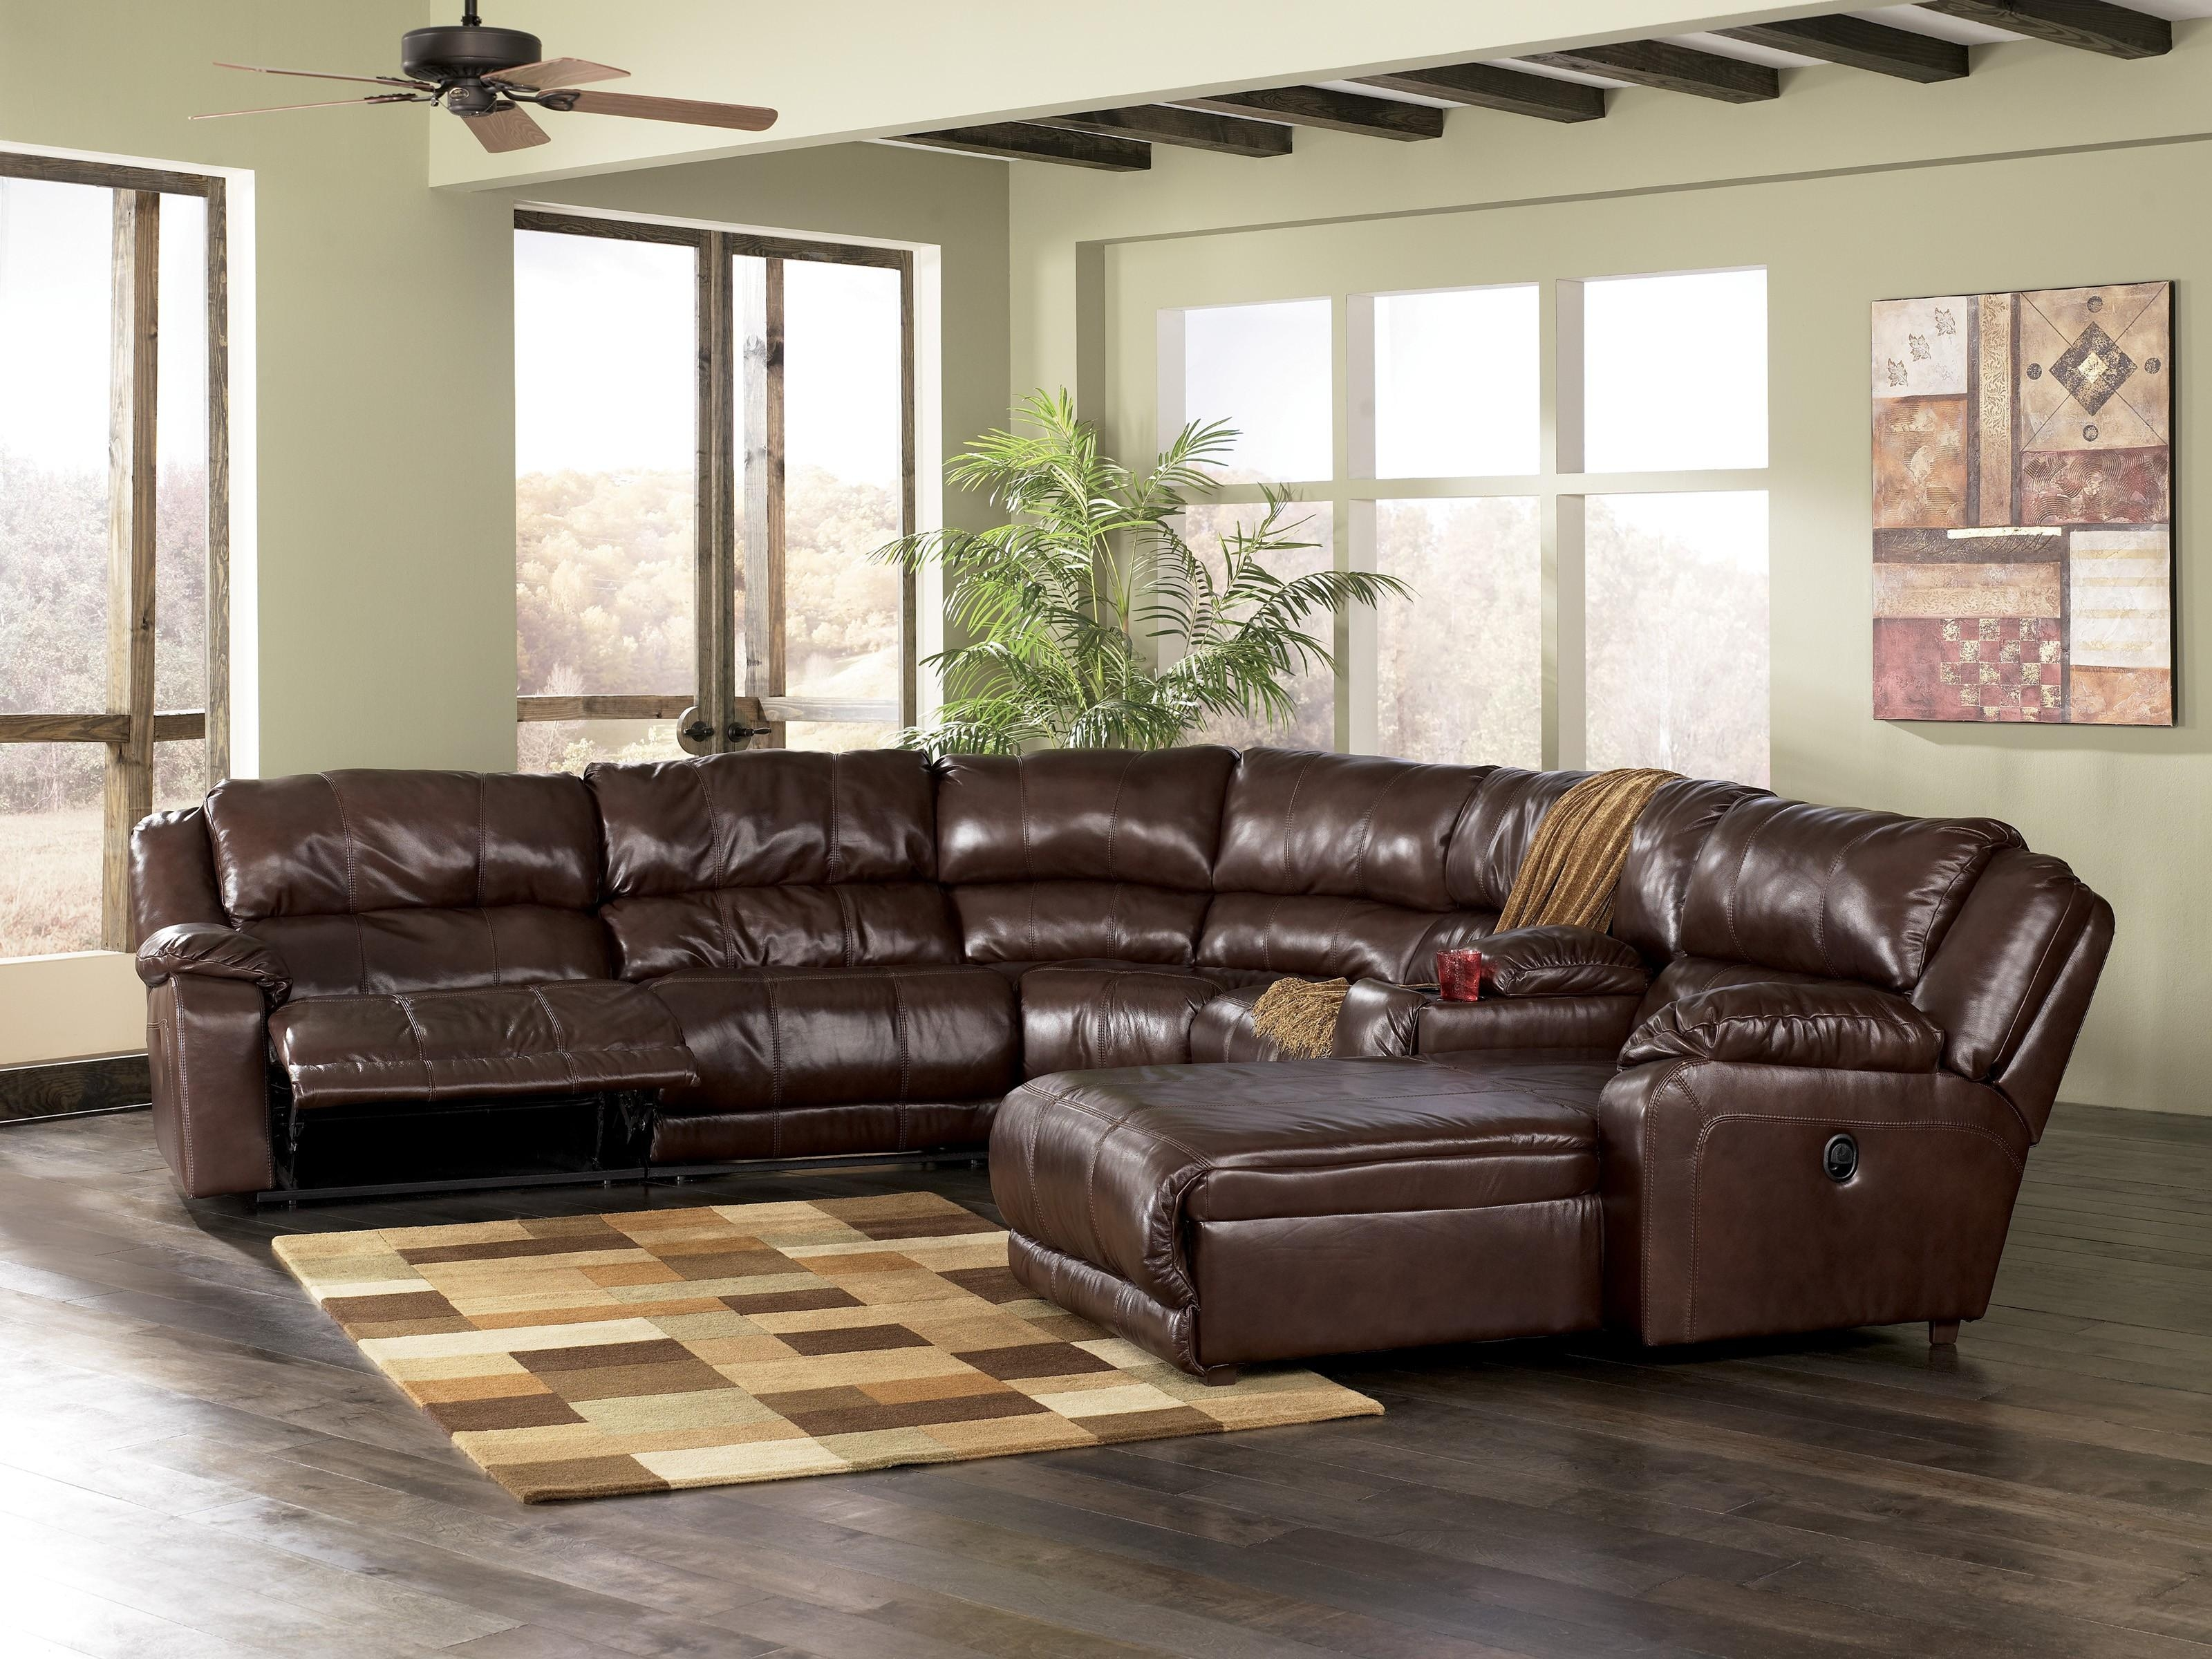 L Shaped Leather Sectional Sofa – Leather Sectional Sofa Pertaining To Leather L Shaped Sectional Sofas (Image 11 of 20)